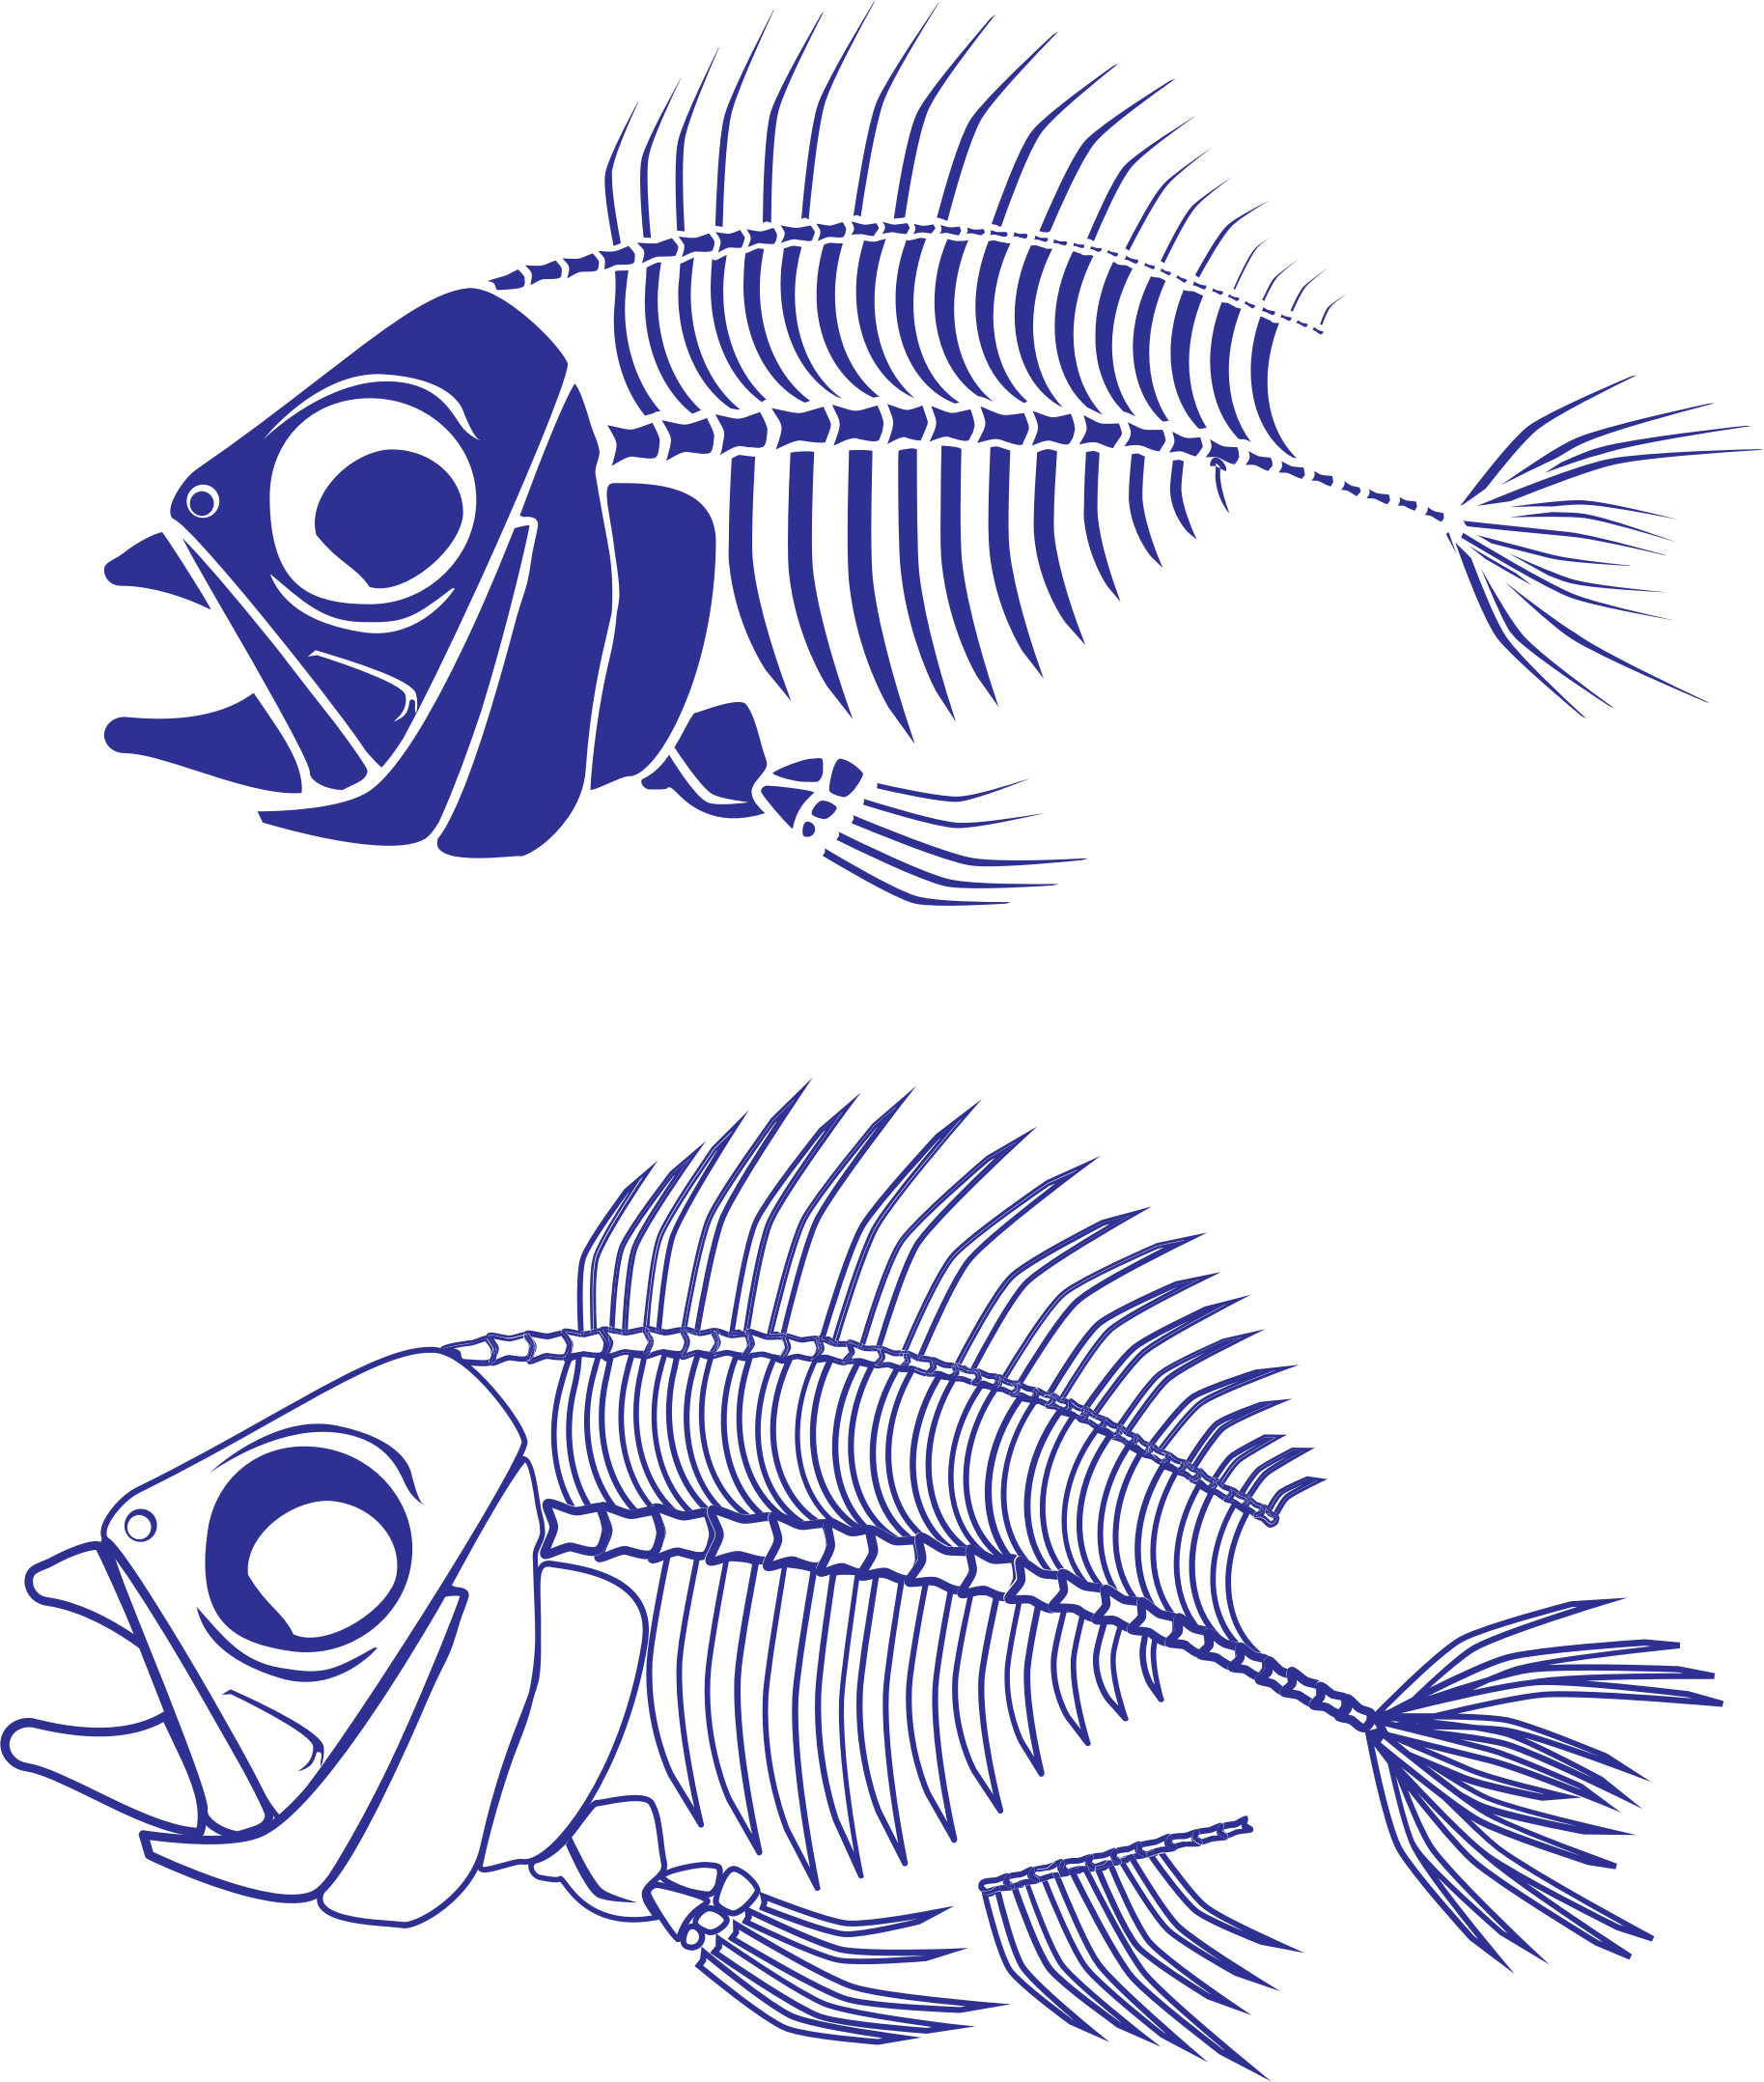 Fish skeleton png. Icons free and downloads